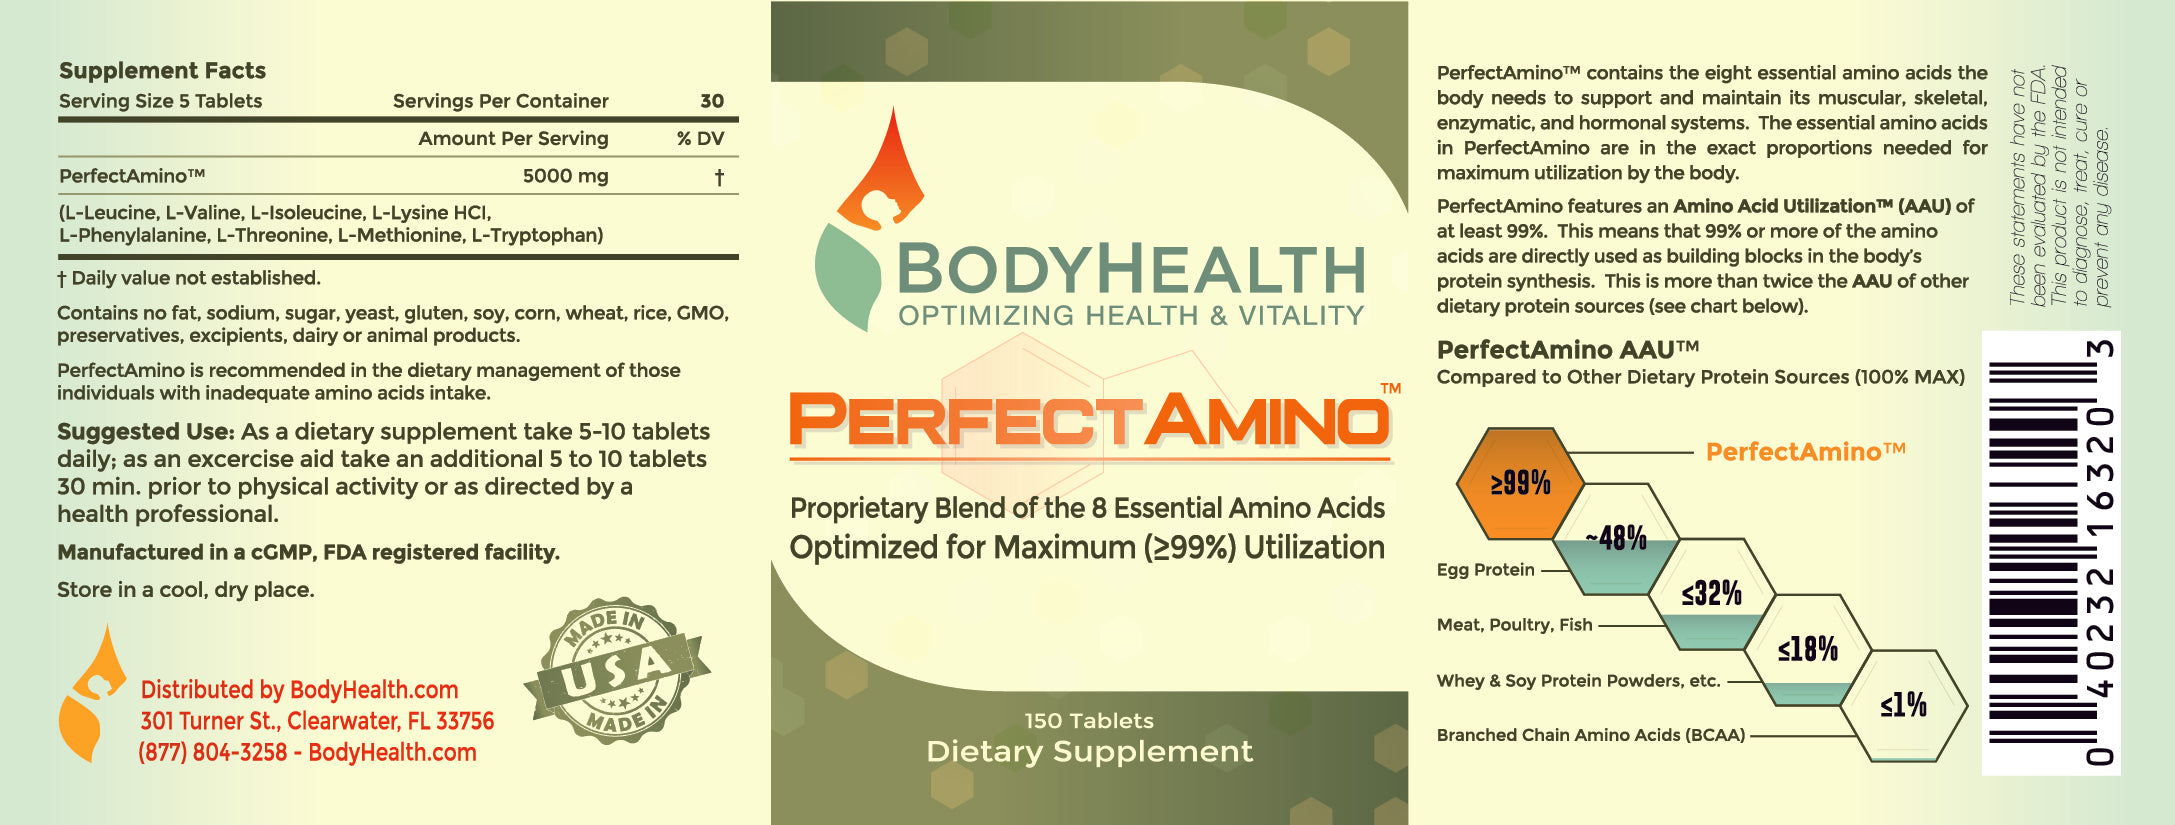 PerfectAmino - Perfect Amino - amino acid formula - Supplemental Facts - Ingredients Label